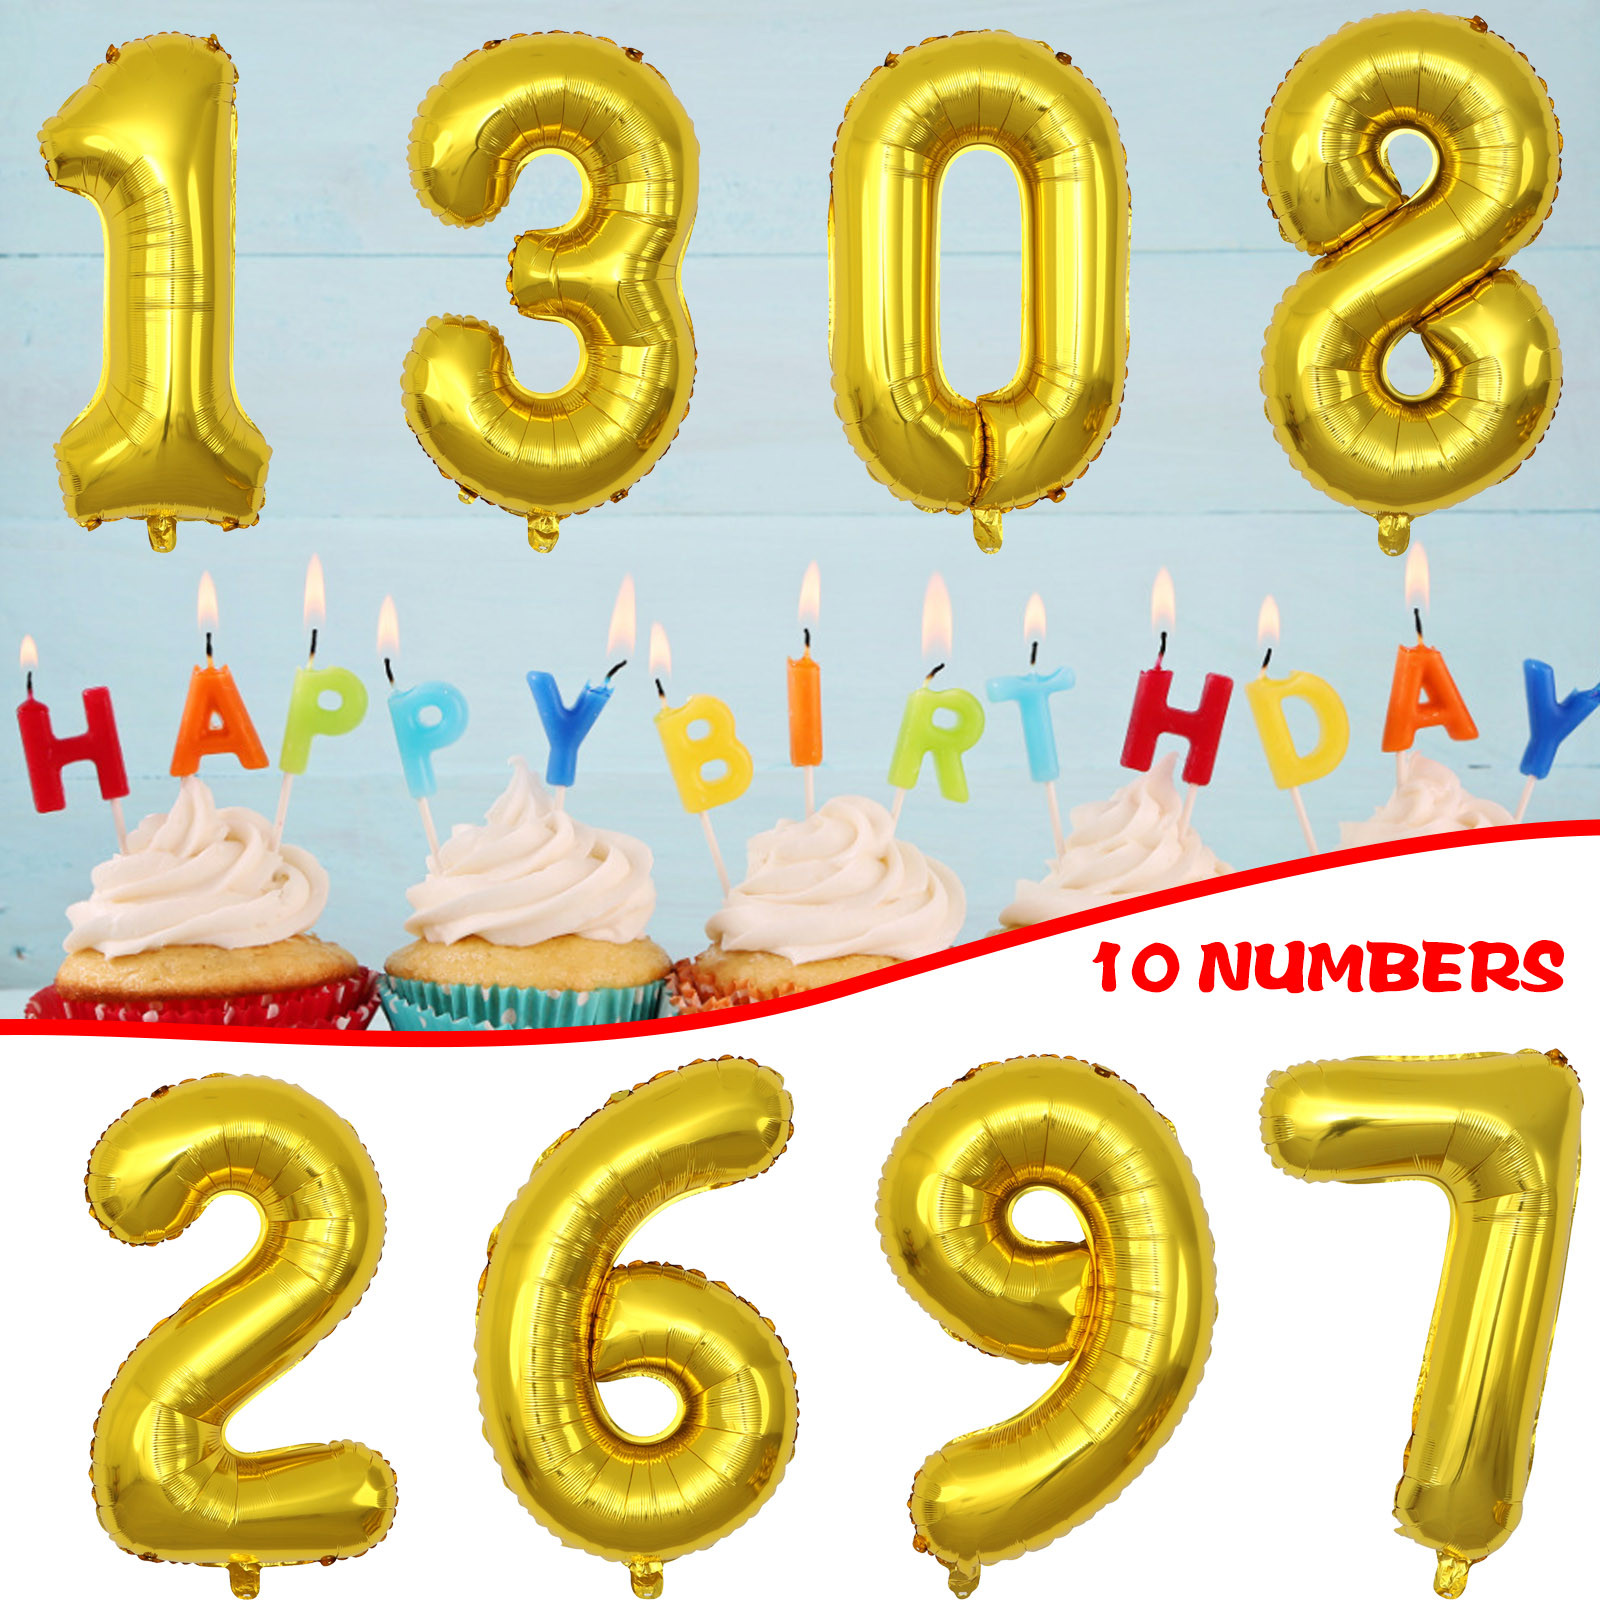 Silver Gold Foil Number Balloons Digital Globos Birthday Wedding Party Decorations Ballons Baby Shower Supplies  Foil Balloons#4